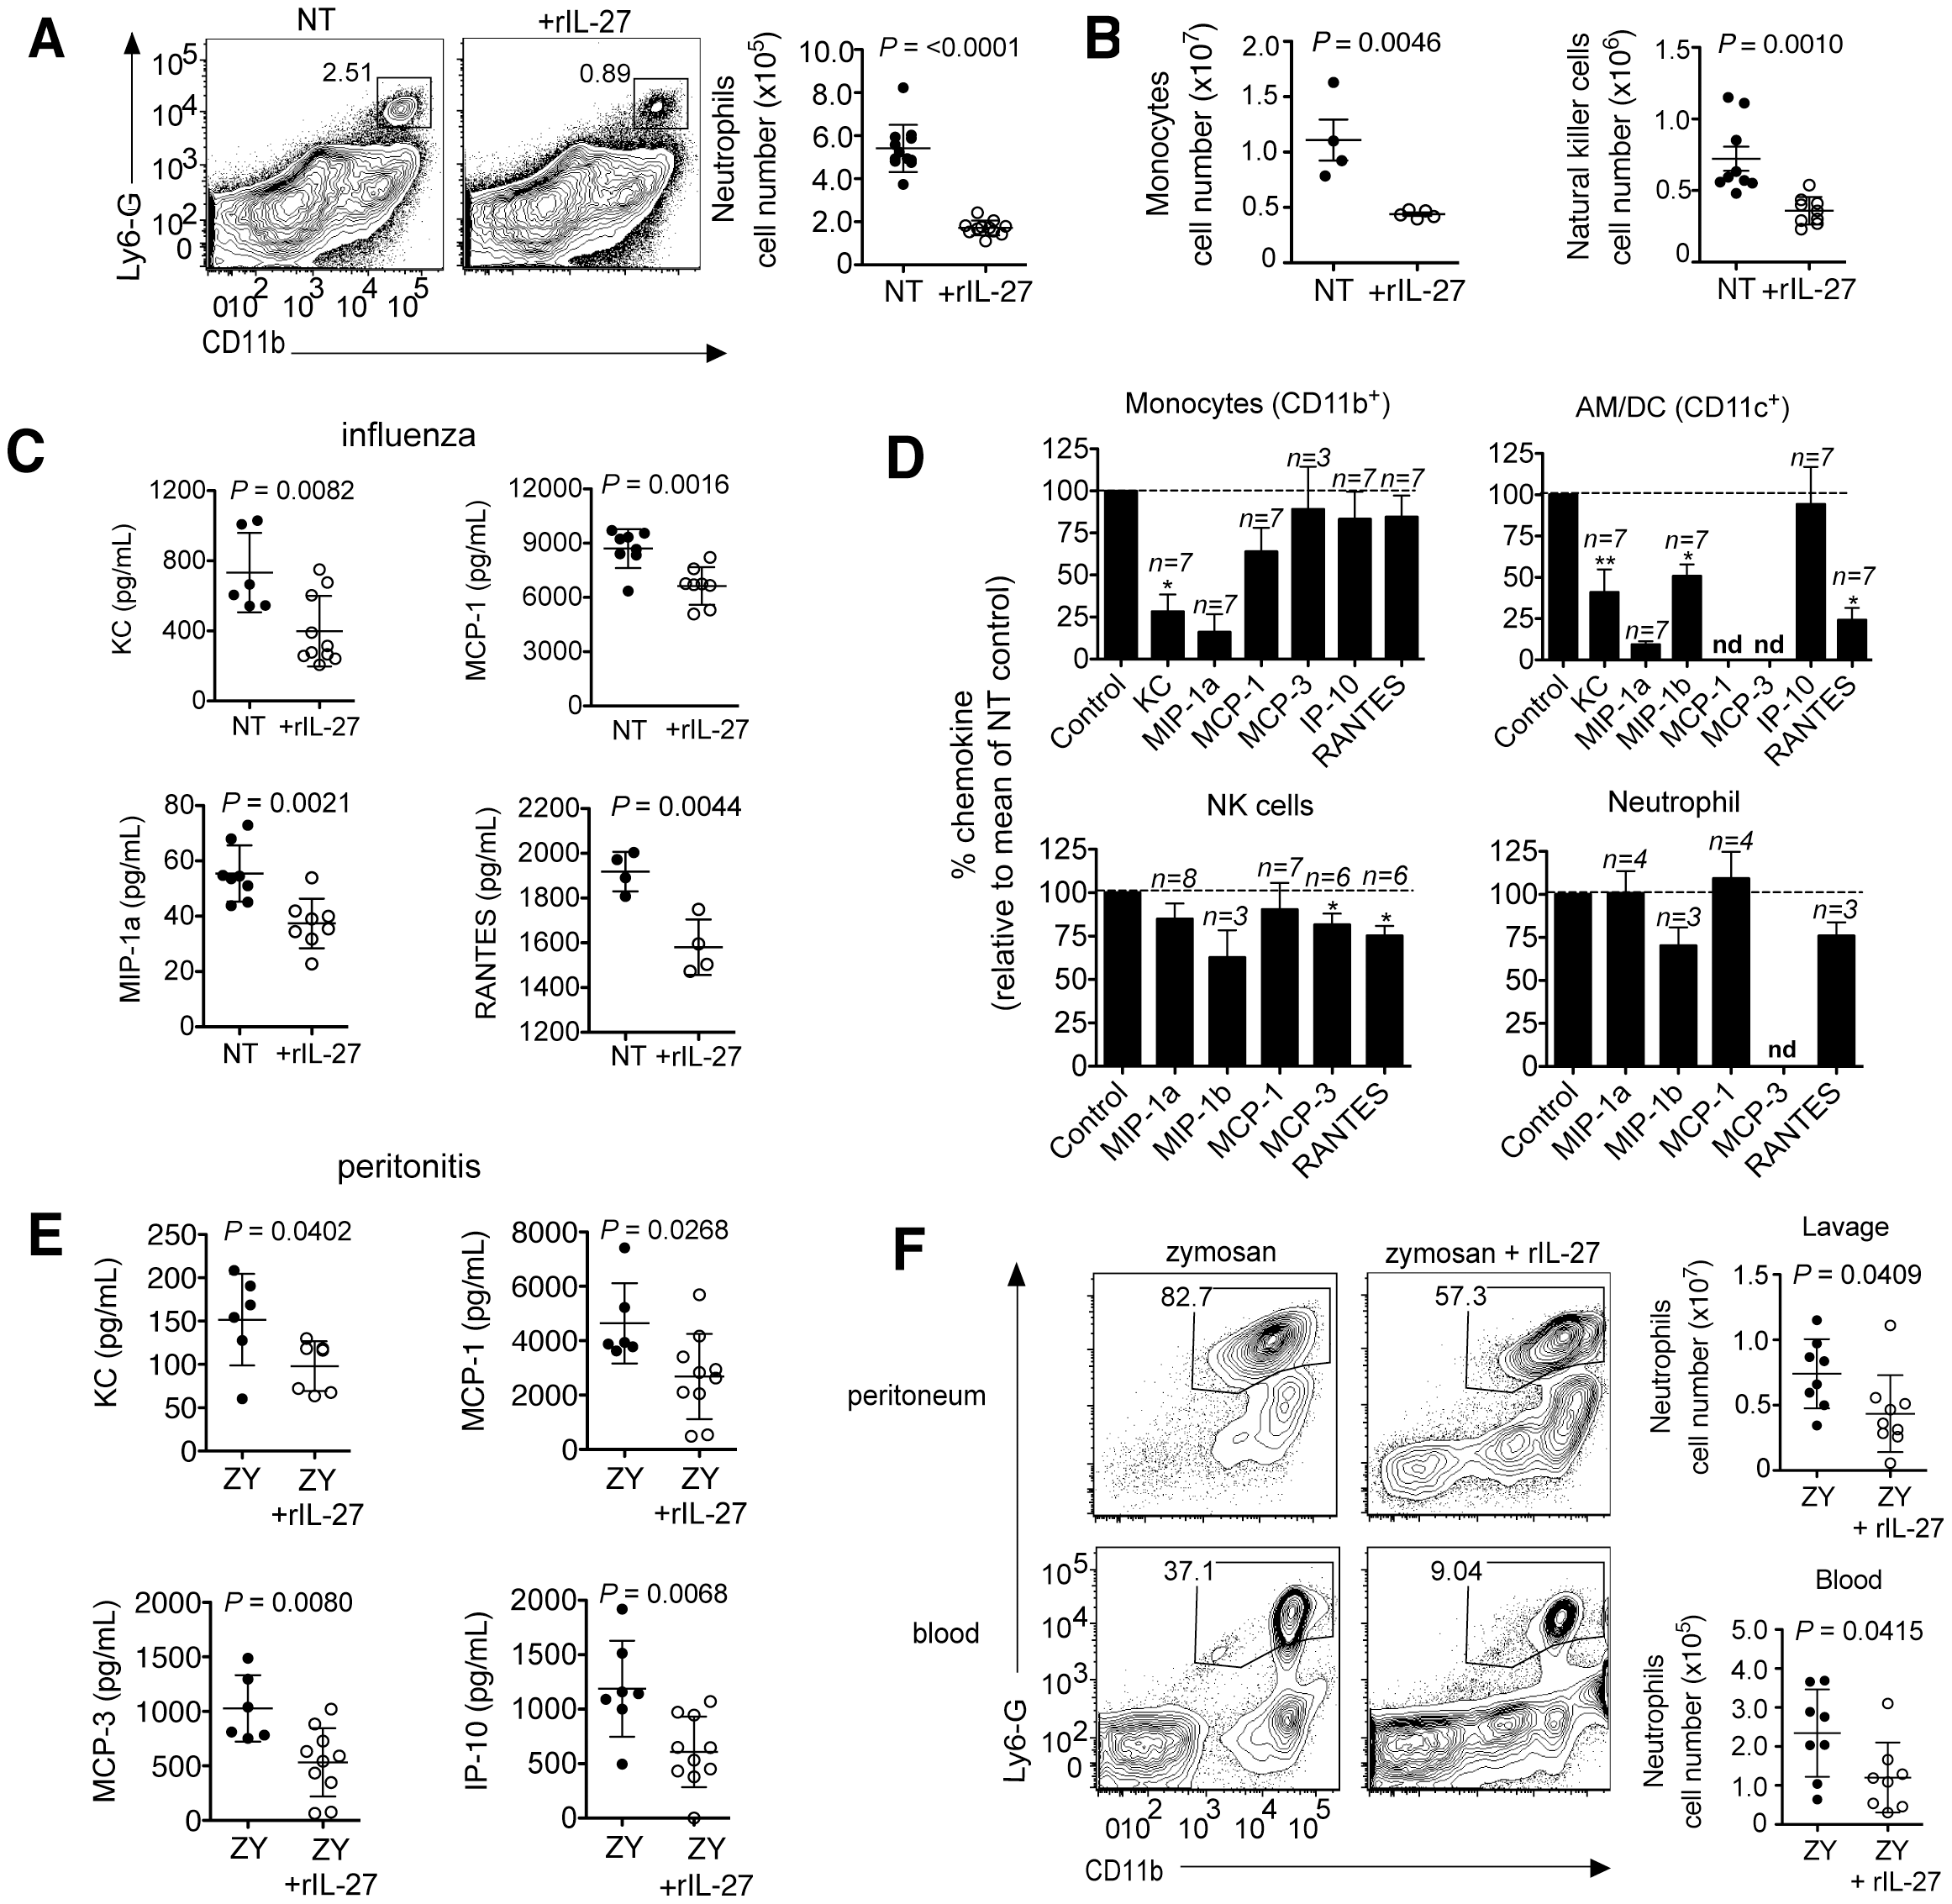 Late IL-27 treatment suppresses innate cell migration and chemokine production by CD11b<sup>+</sup> and CD11c<sup>+</sup> cells.